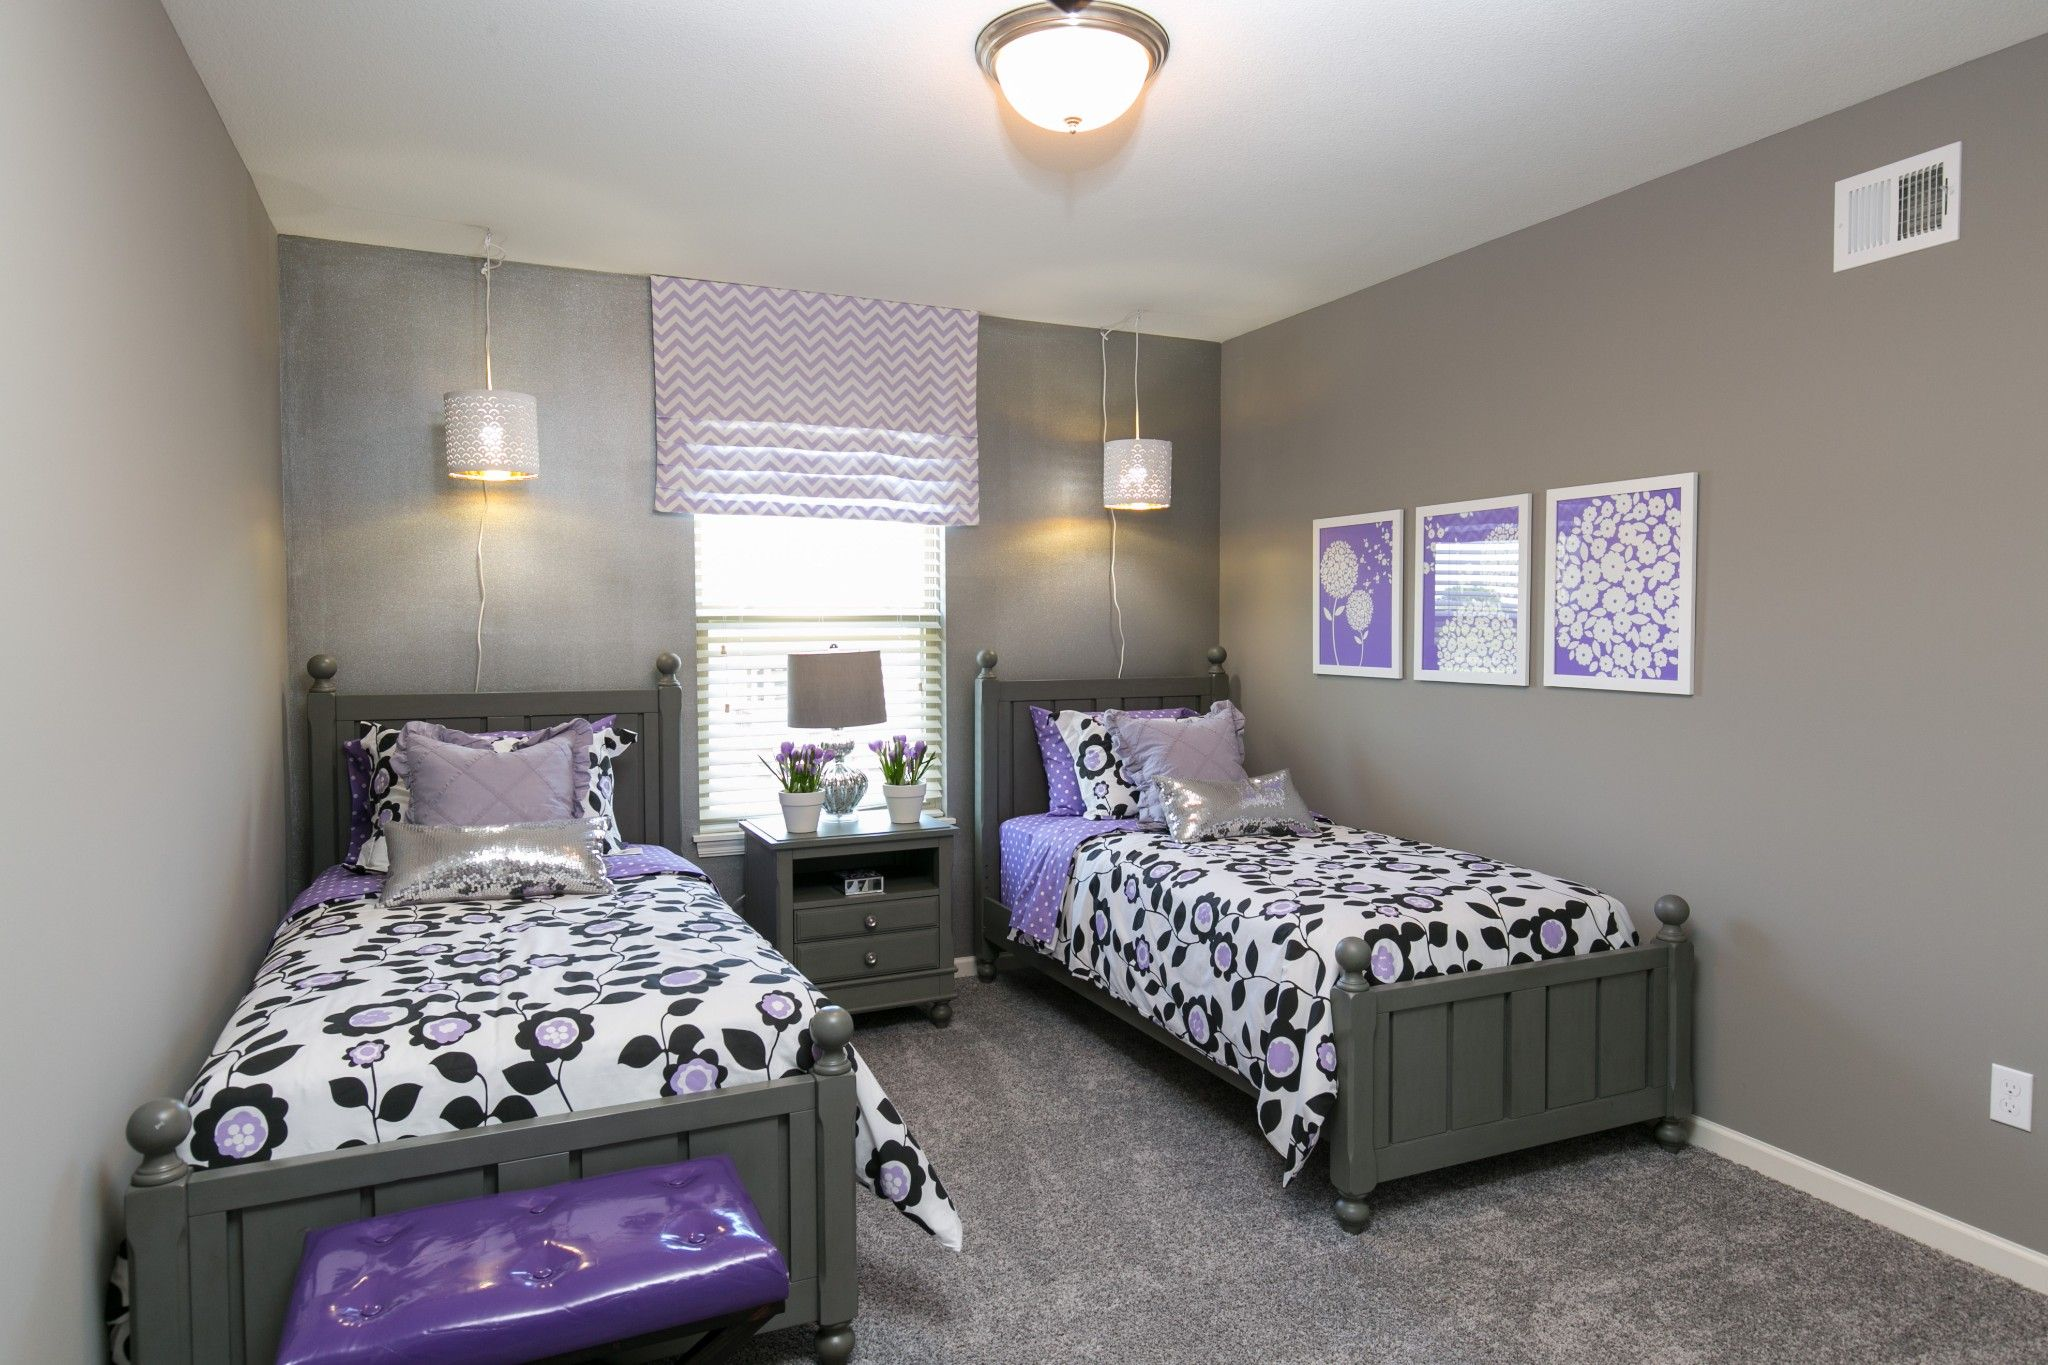 Bedroom featured in the Preston Ridge - IA By Summit Homes in Des Moines, IA